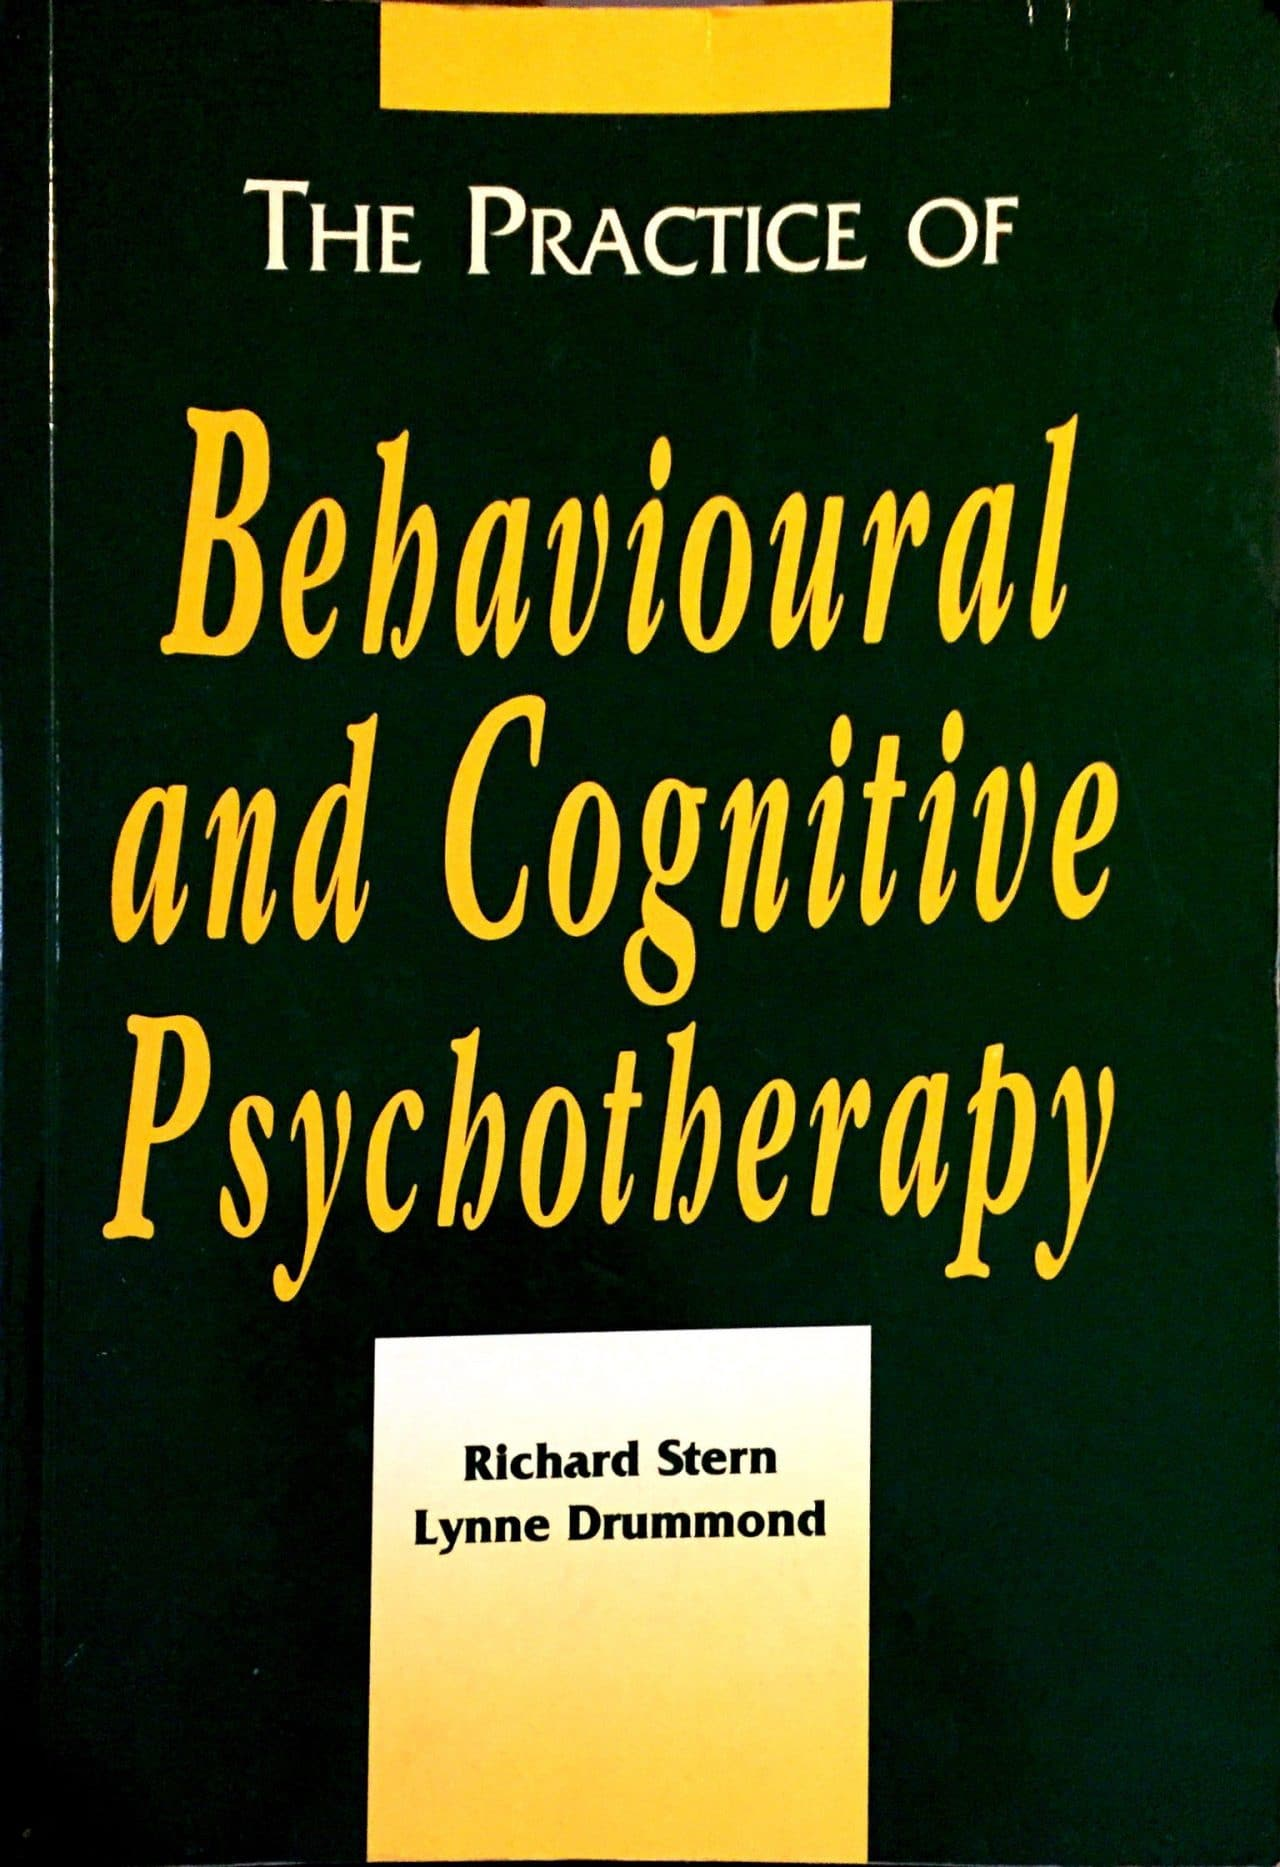 The Pratice Of Behavioural And Cognitive Psychotherapy